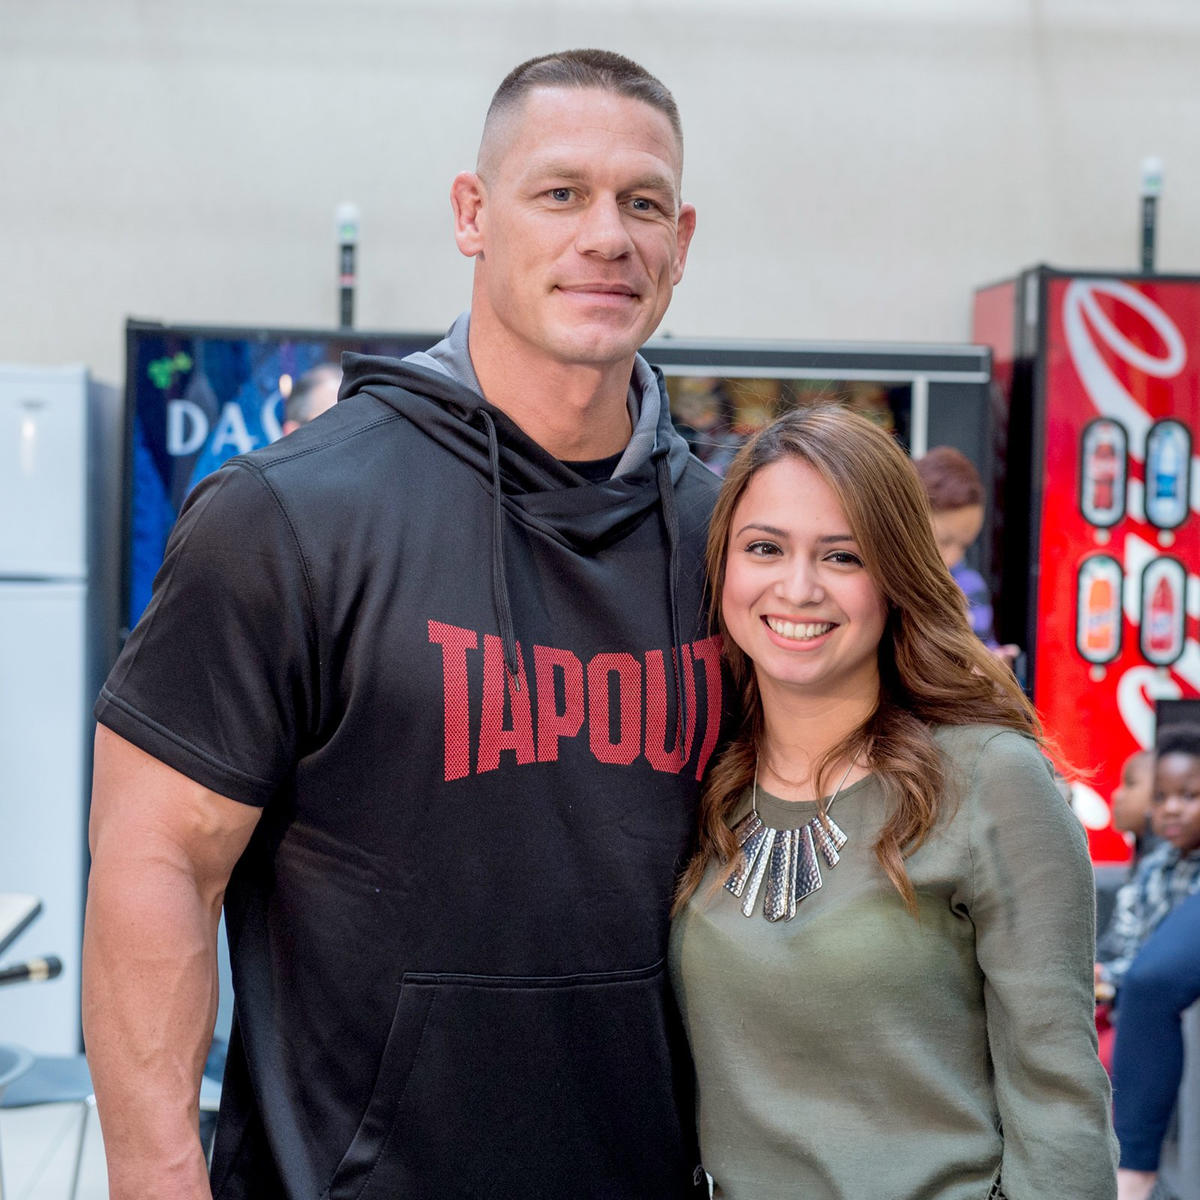 Cena introduces tapout performance collection at dallas jcpenney tapout brand ambassador john cena meets members of the wwe universe kristyandbryce Choice Image